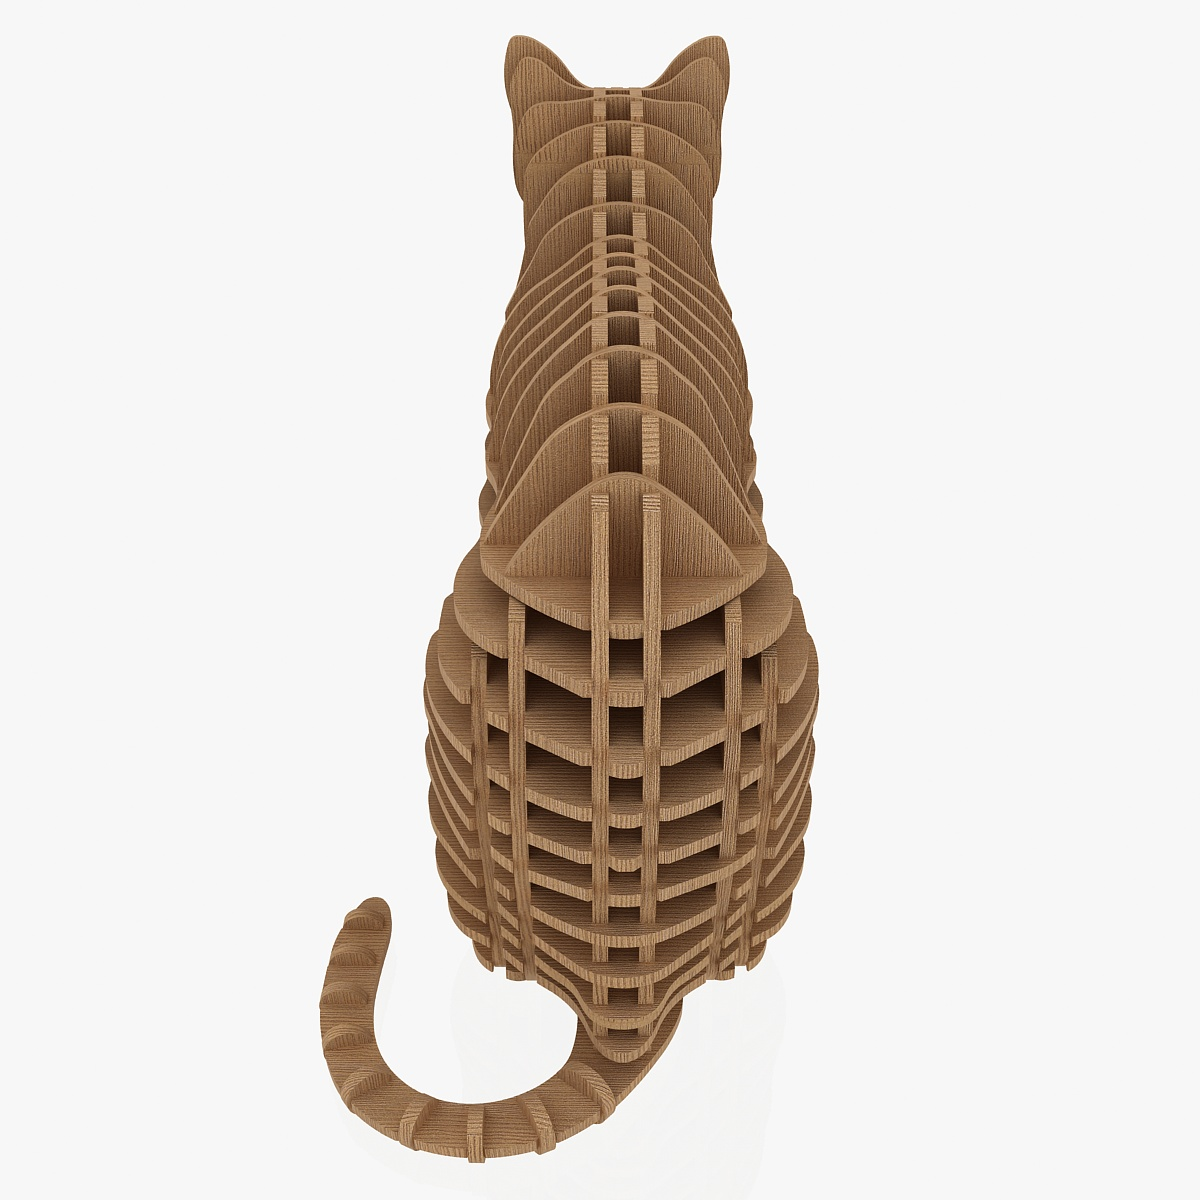 teka-teki kucing 1 3d model 3ds max dxf dwg fbx dae obj 223466